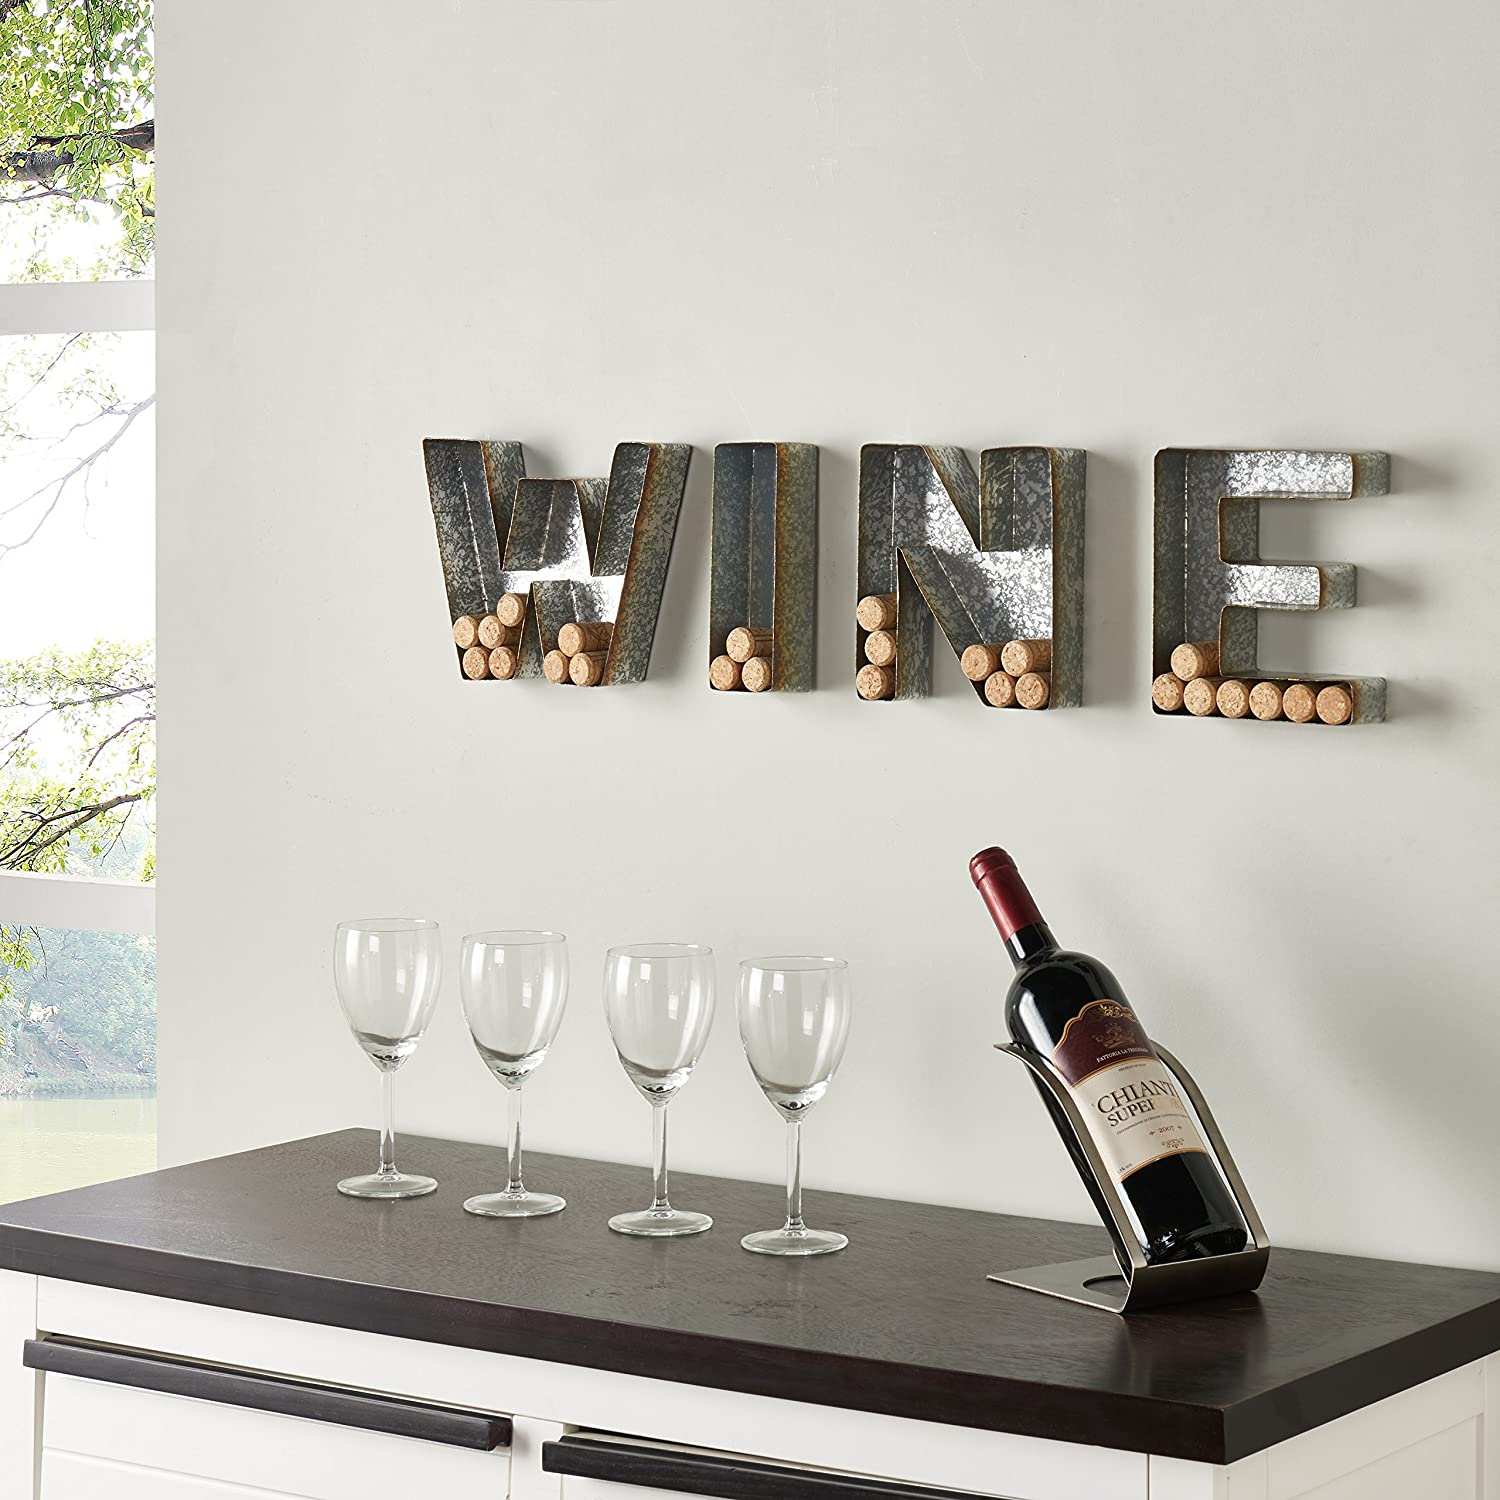 Danya B. HG11415 Wall Mount Decorative Galvanized Metal Art Wine Letters Cork Holder